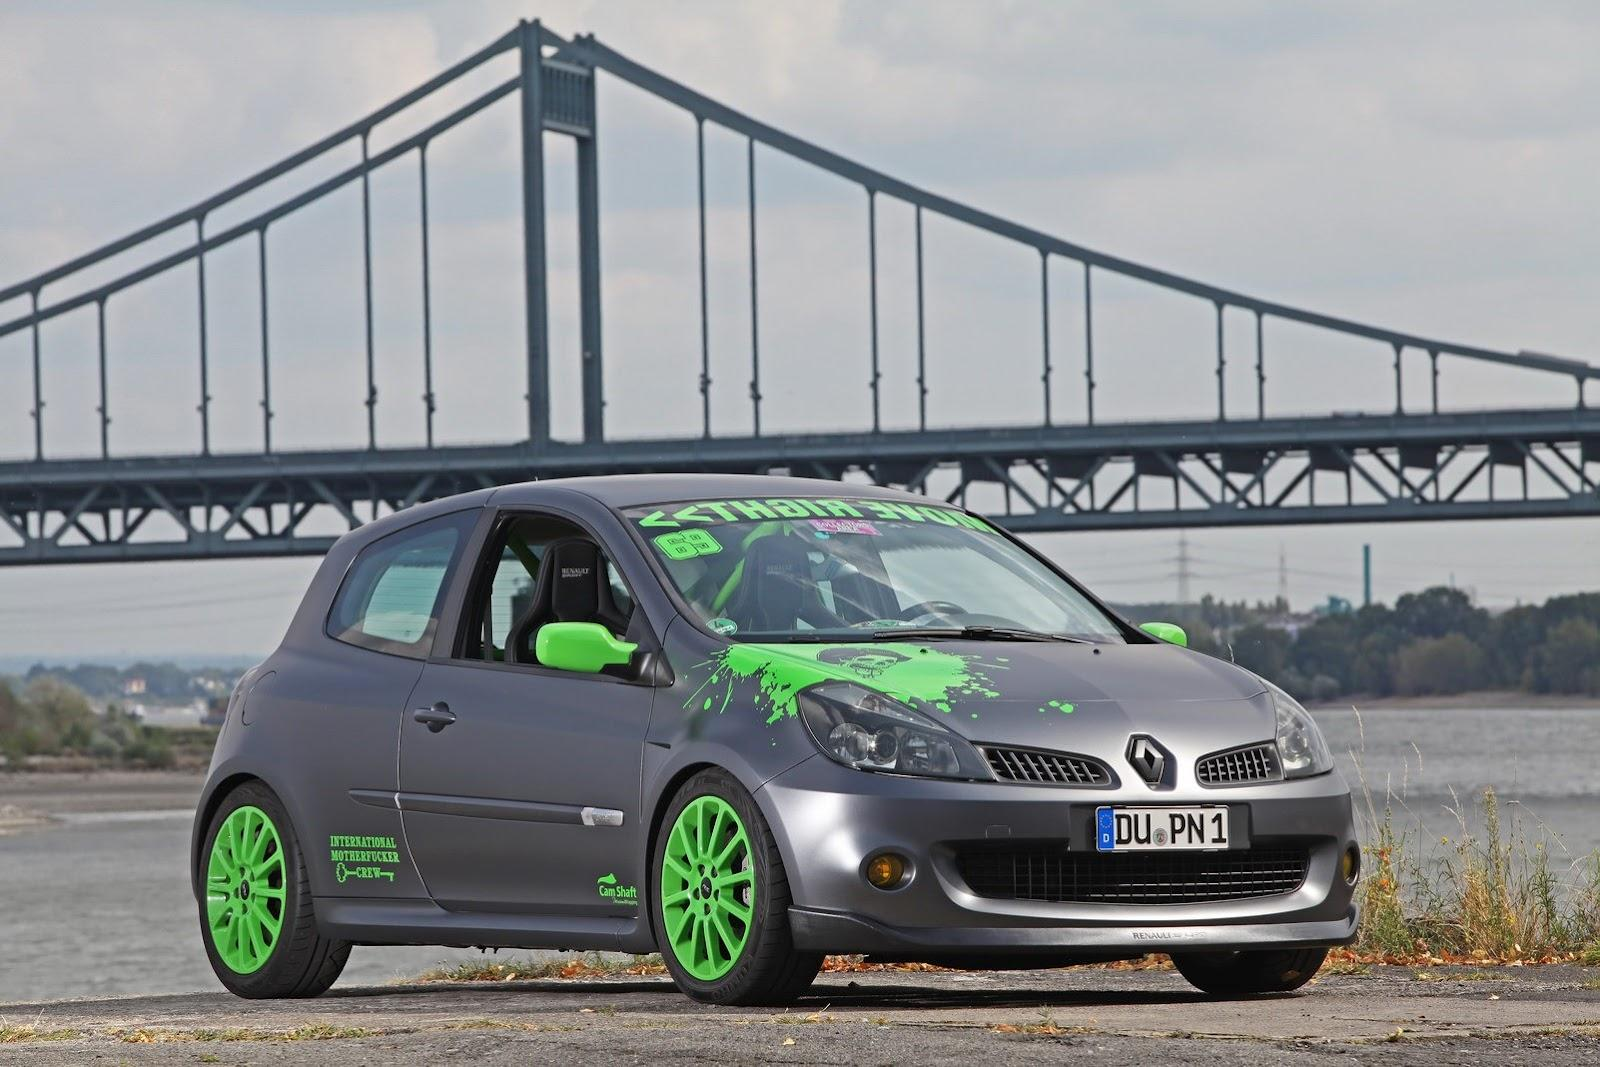 renault clio rs by cam shaft car tuning styling. Black Bedroom Furniture Sets. Home Design Ideas